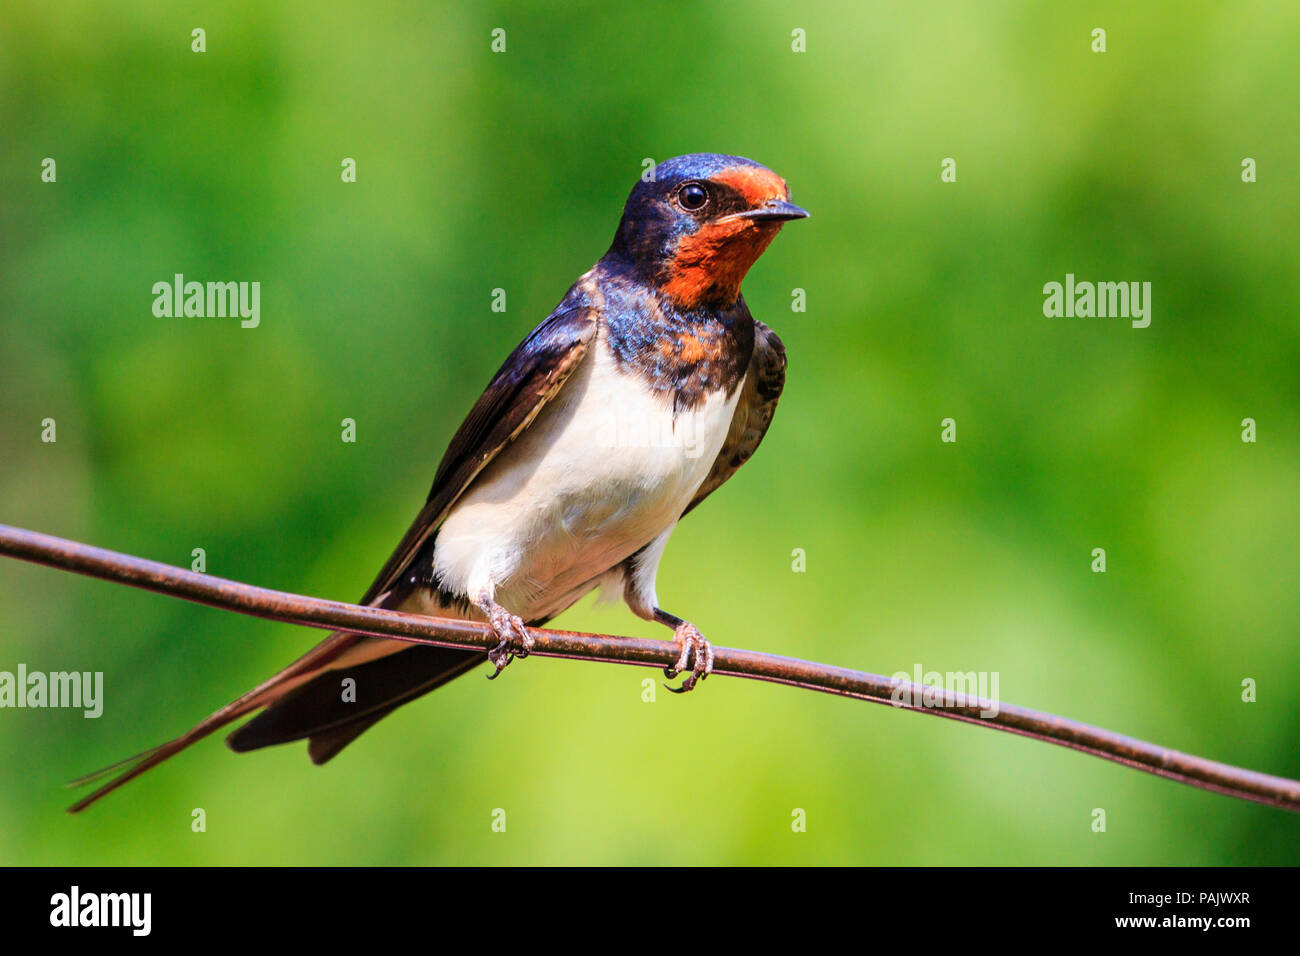 bird with a red mask sitting on a wire Stock Photo